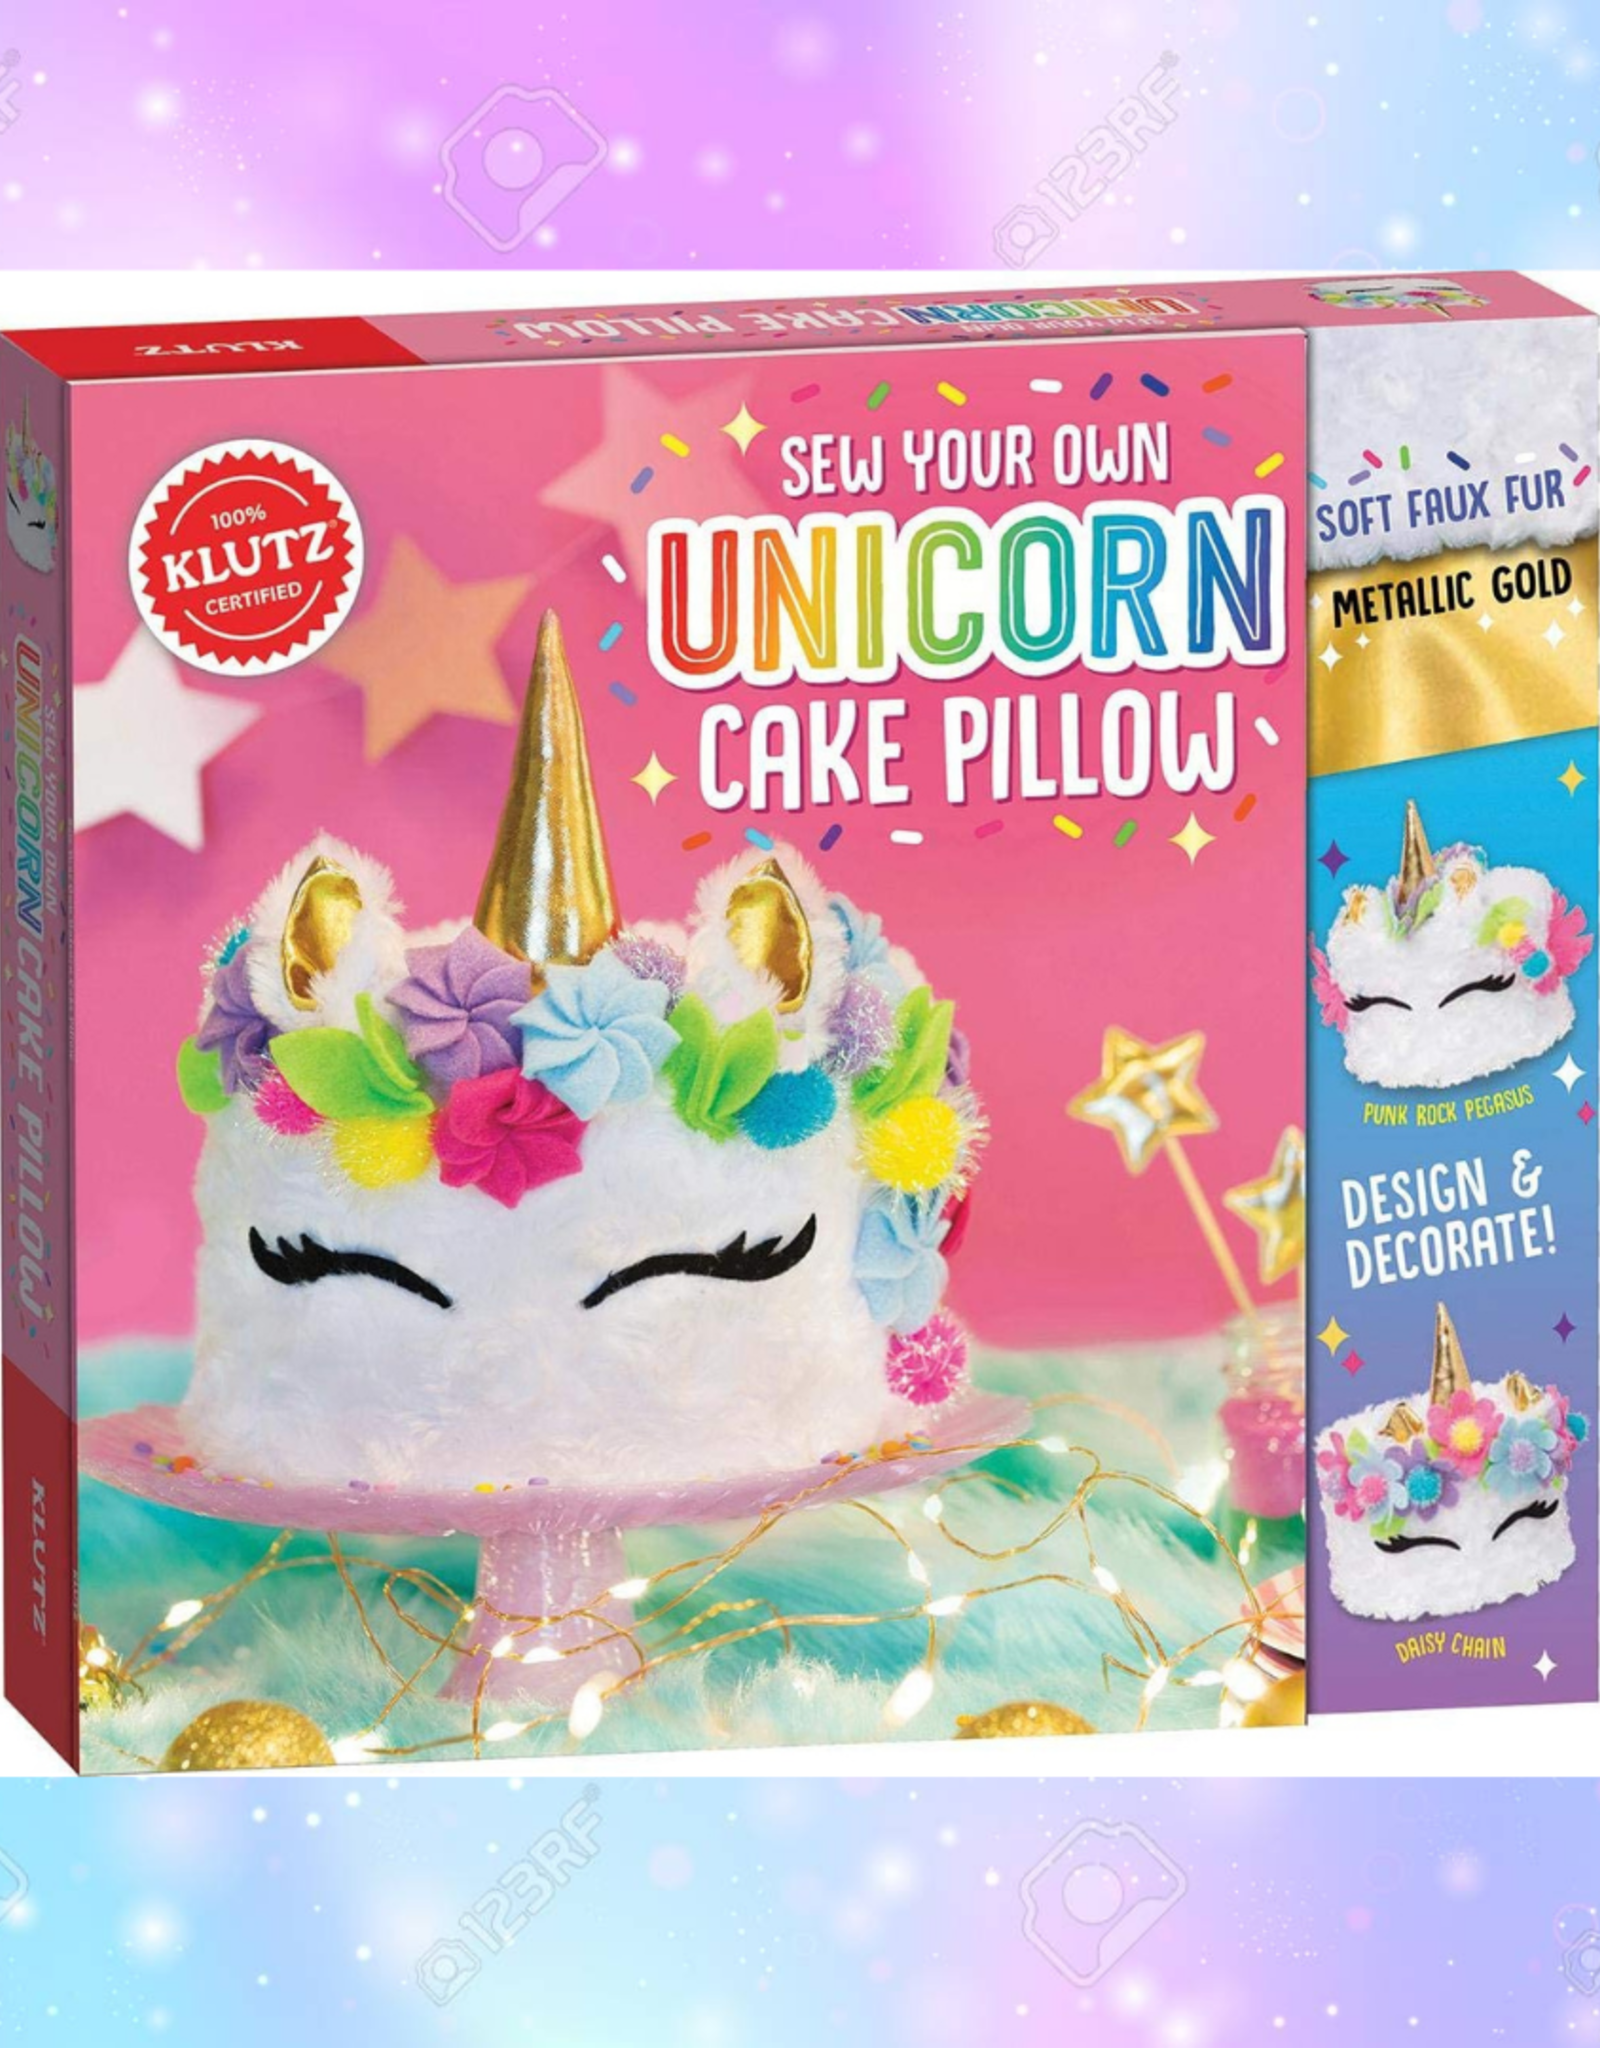 KLUTZ UNICORN CAKE PILLOW